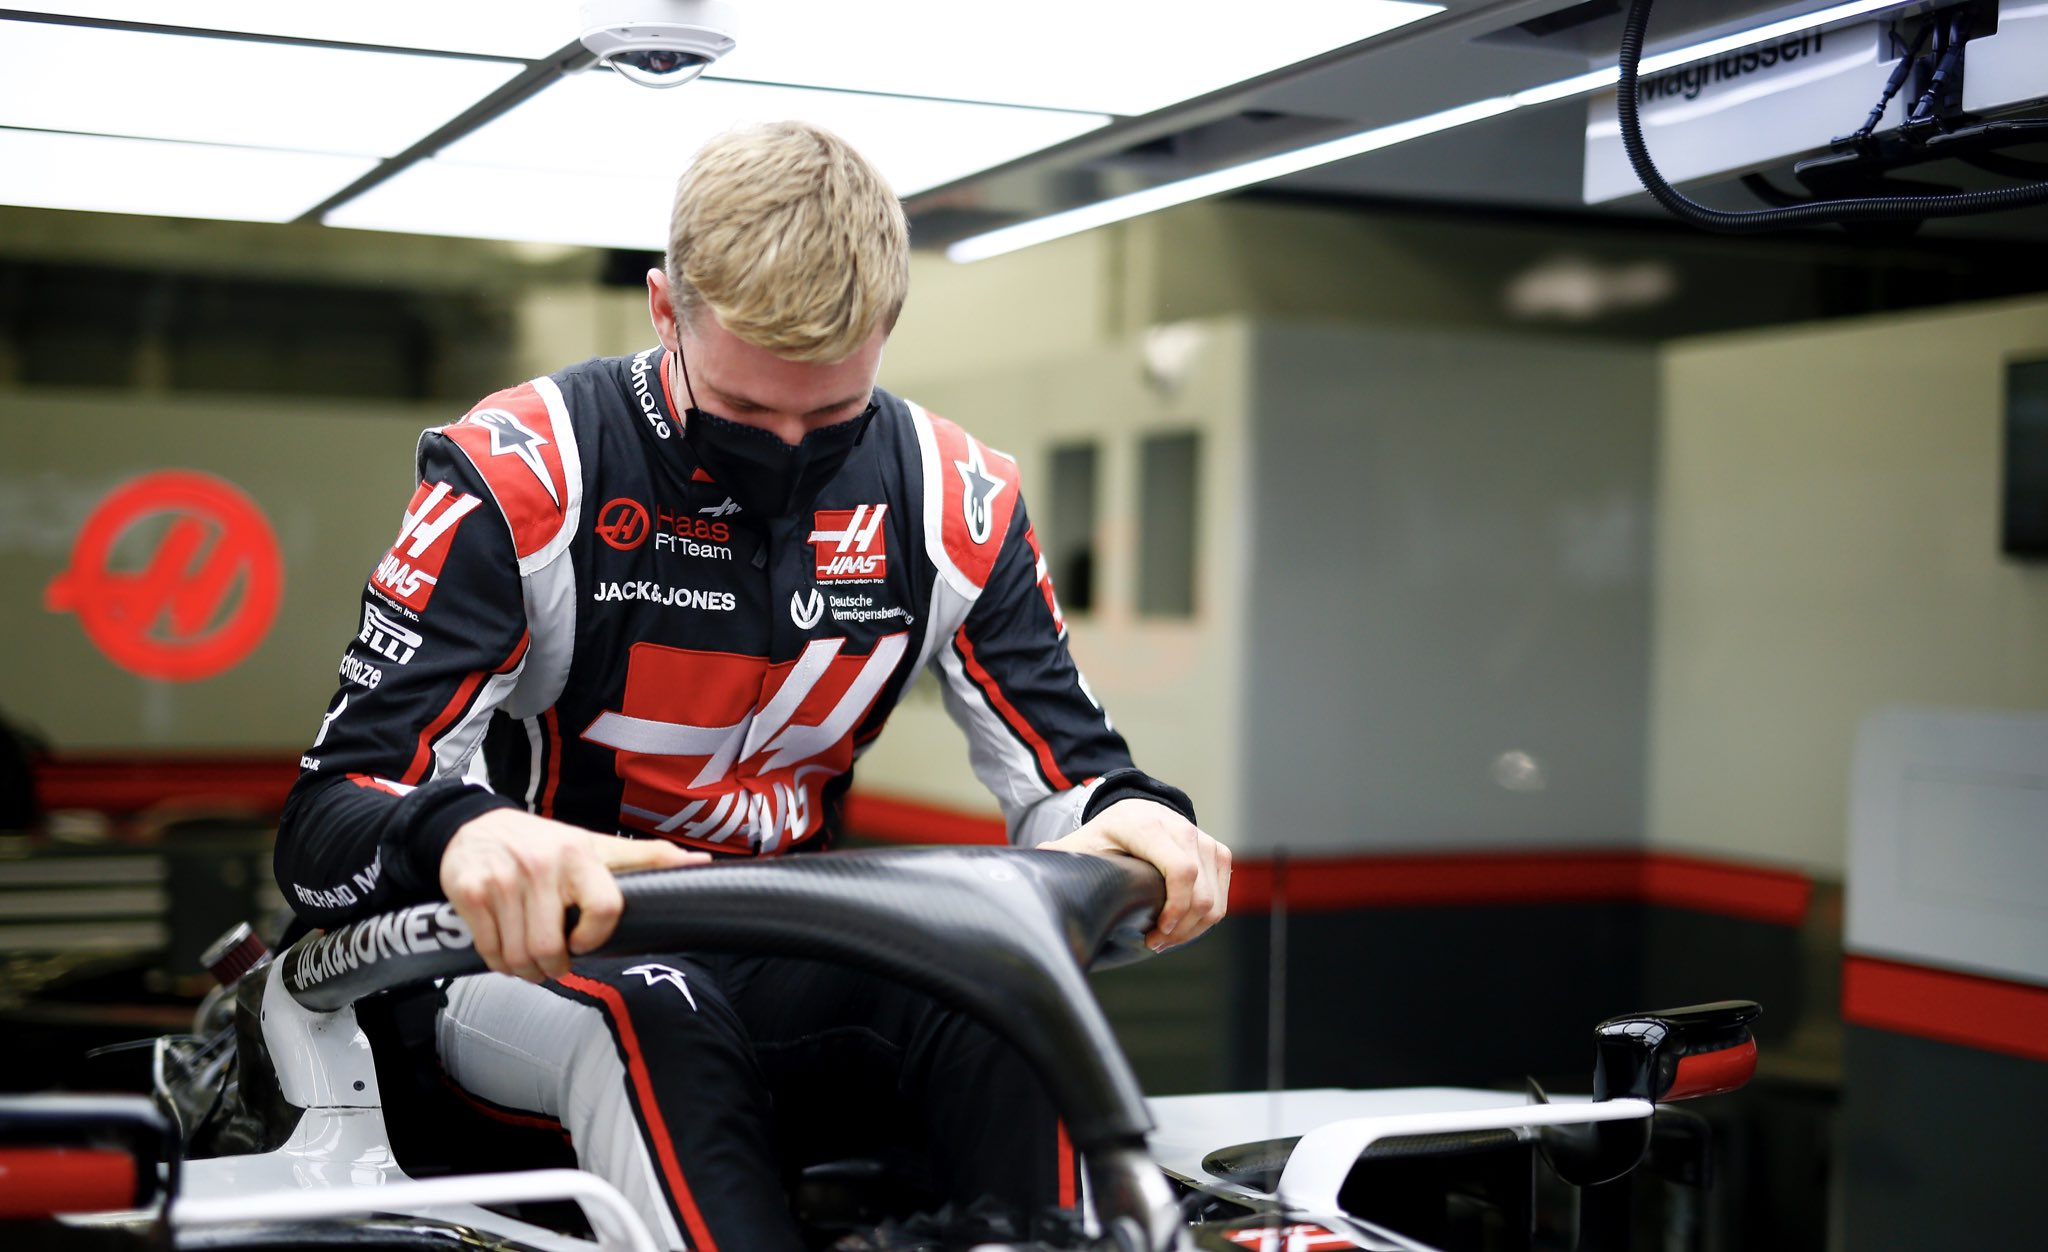 """""""I'm here at the factory"""" - Mick Schumacher completes his seat fitting with the Haas F1 team"""